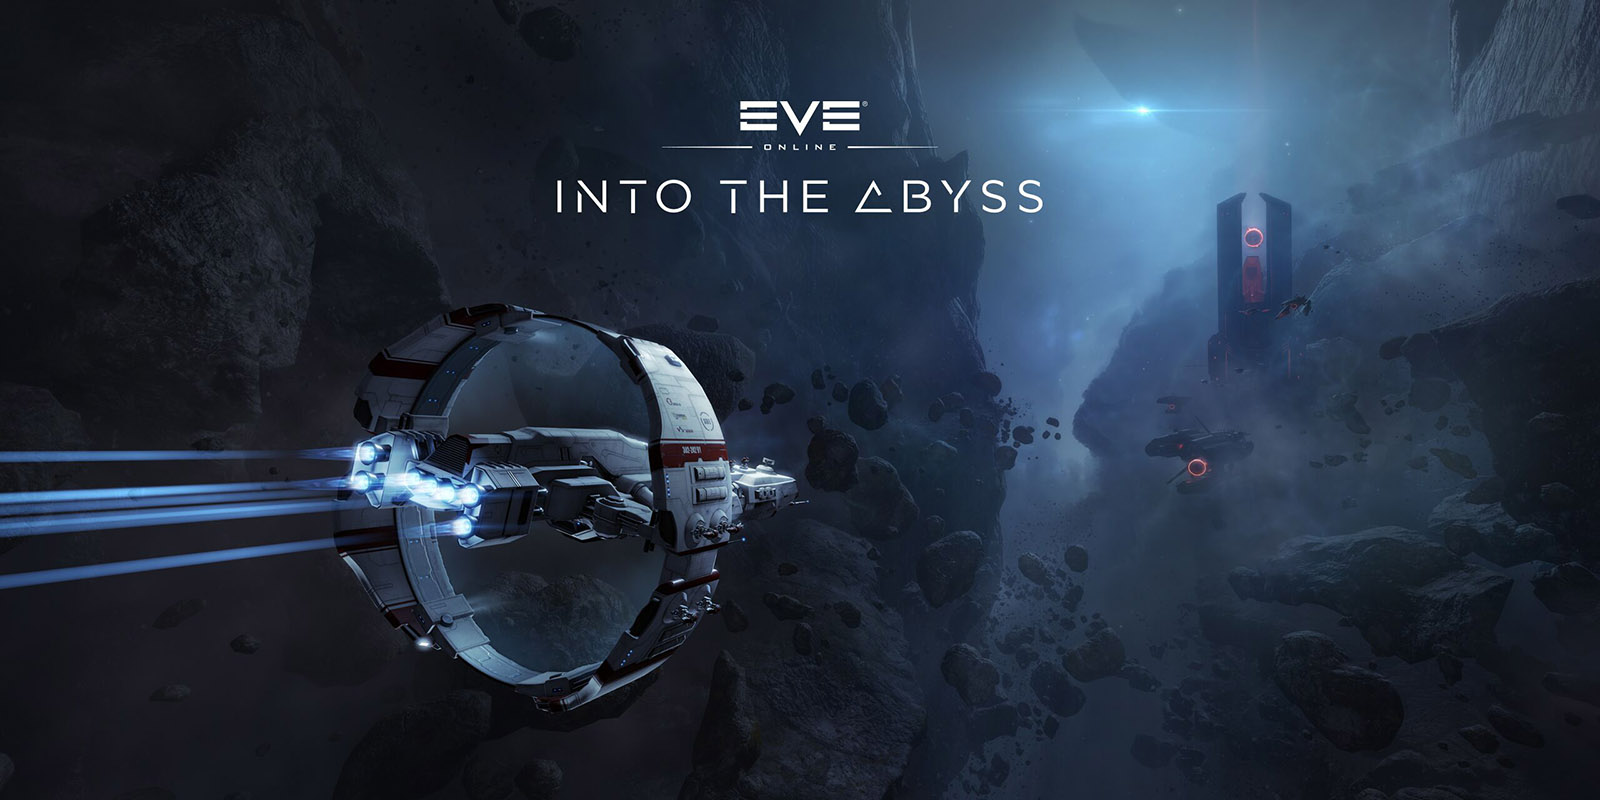 Abyss Eve